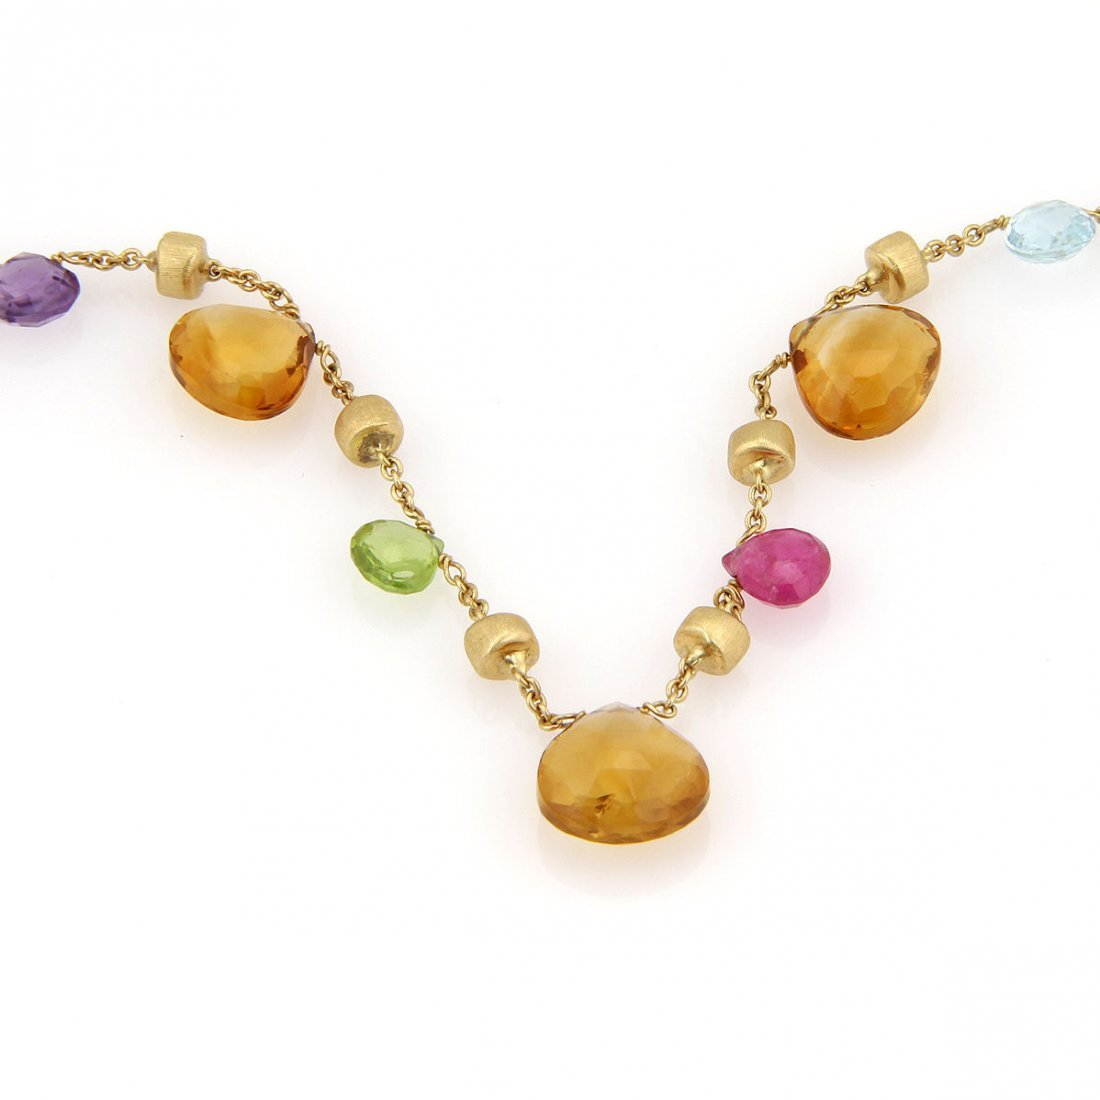 Marco Bicego 18K Yellow Gold Multi Color Gemstone